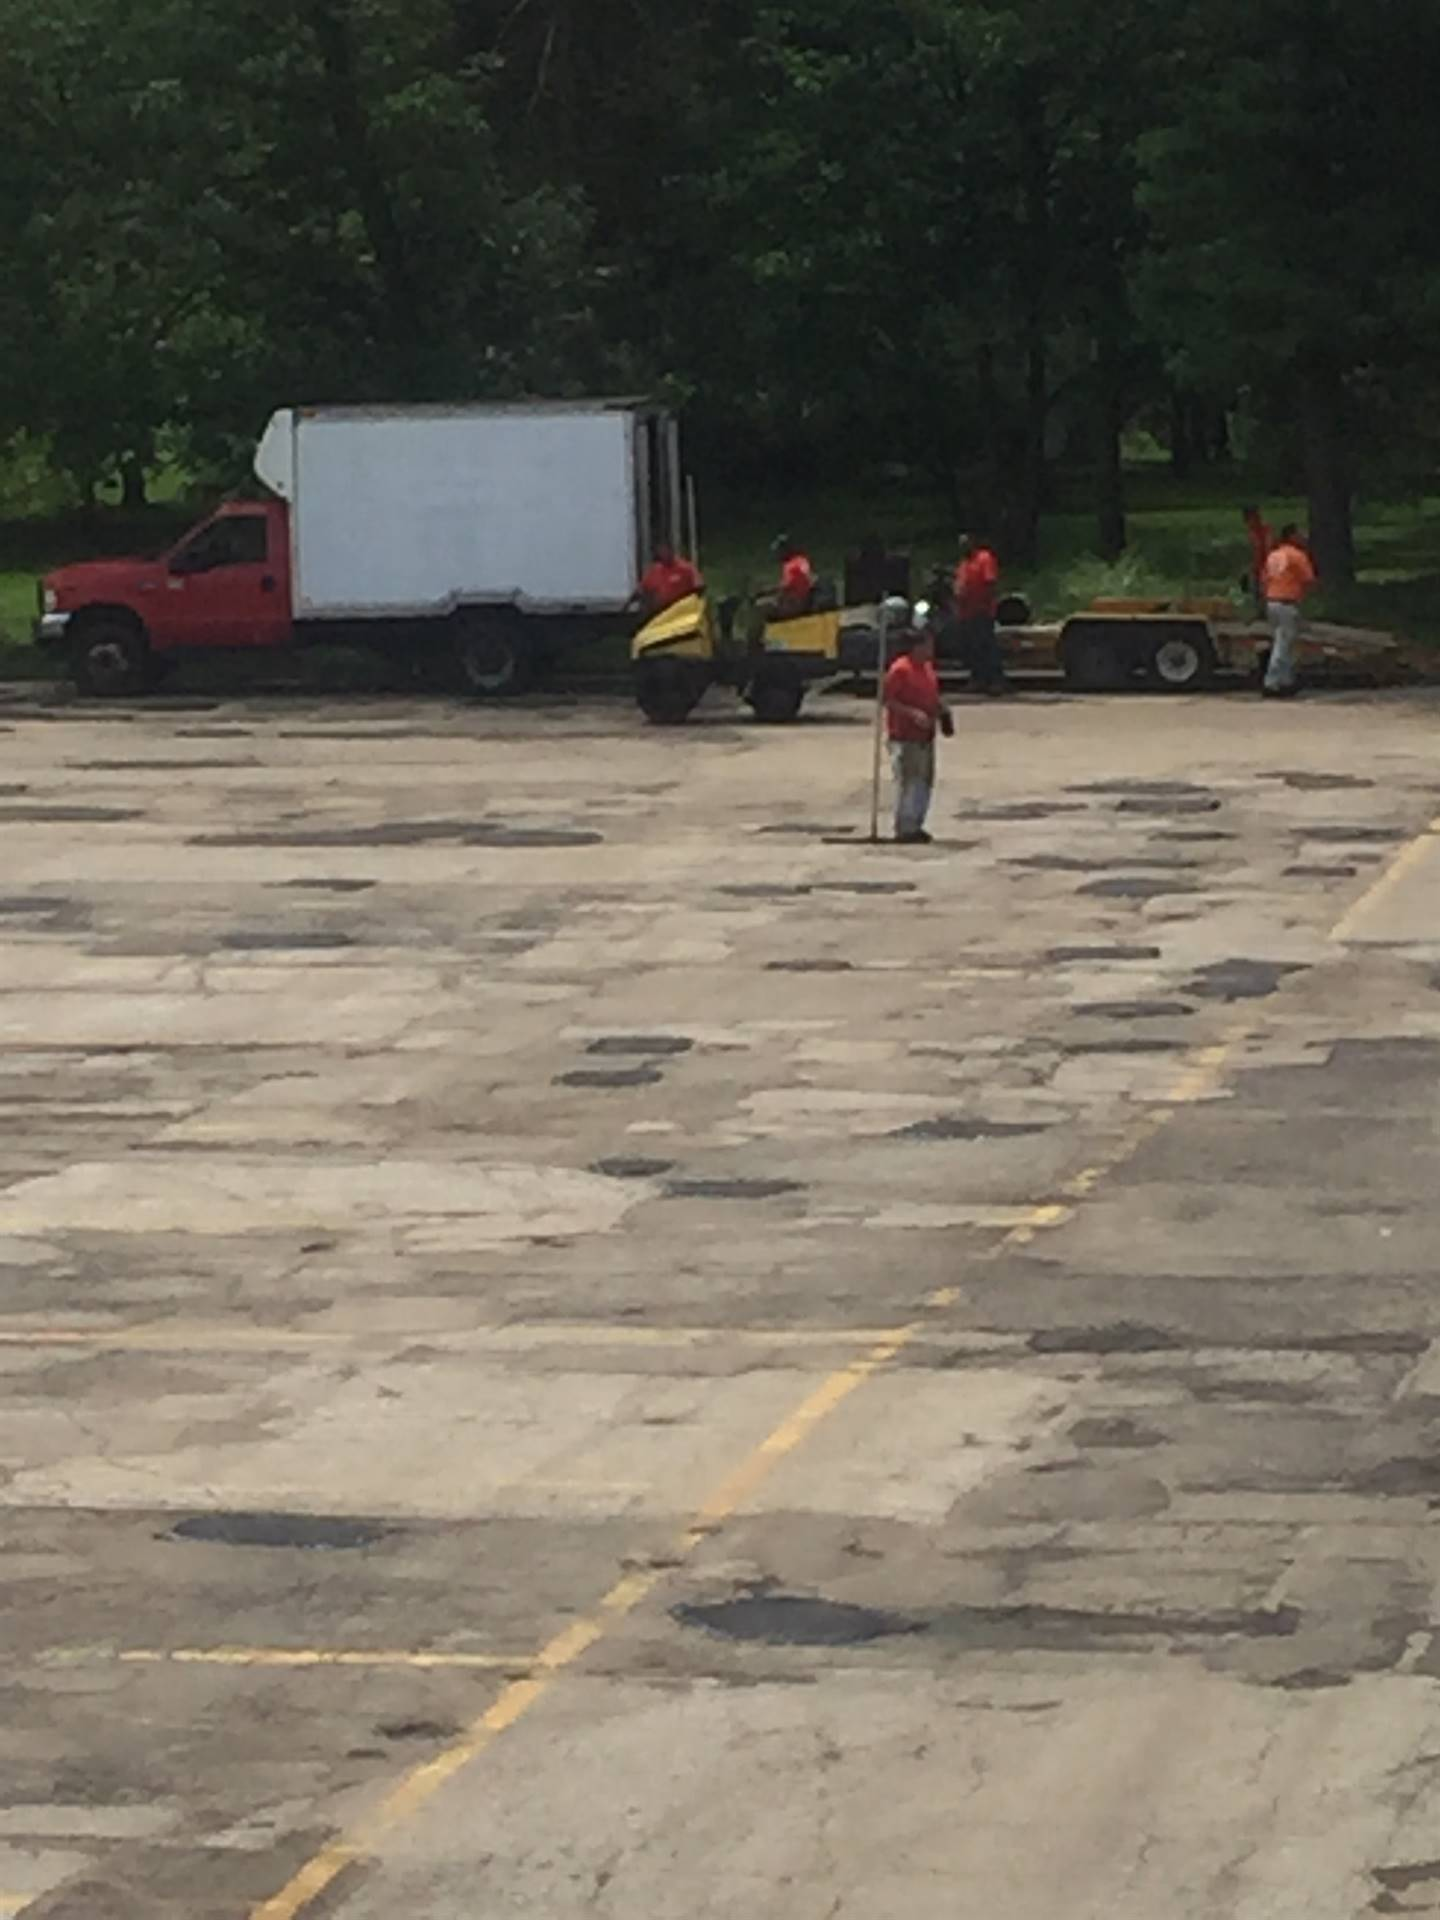 NRHS: Asphalt repair - June 2018